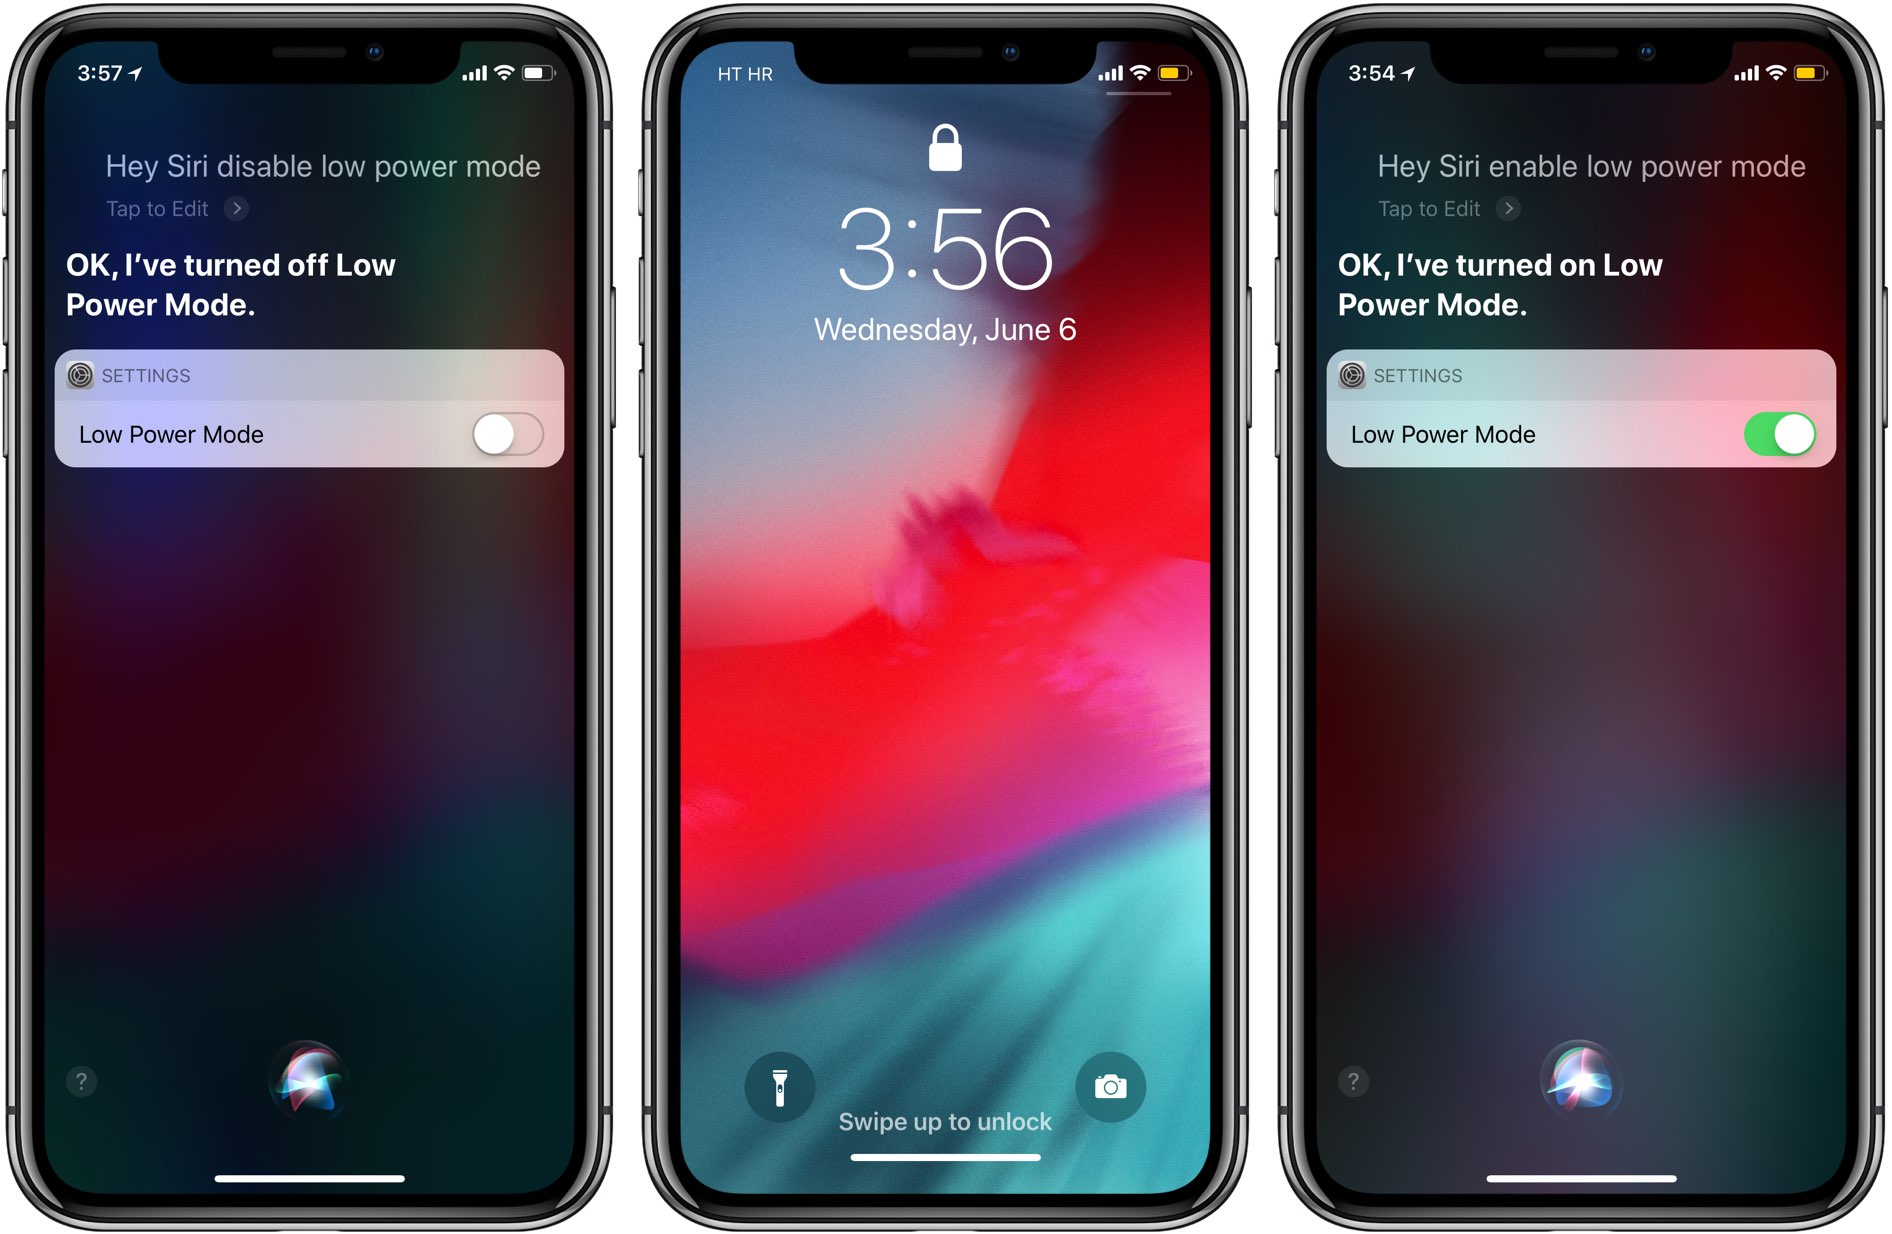 Untethered Hey Siri is shown working in Low Power Mode on iOS 12